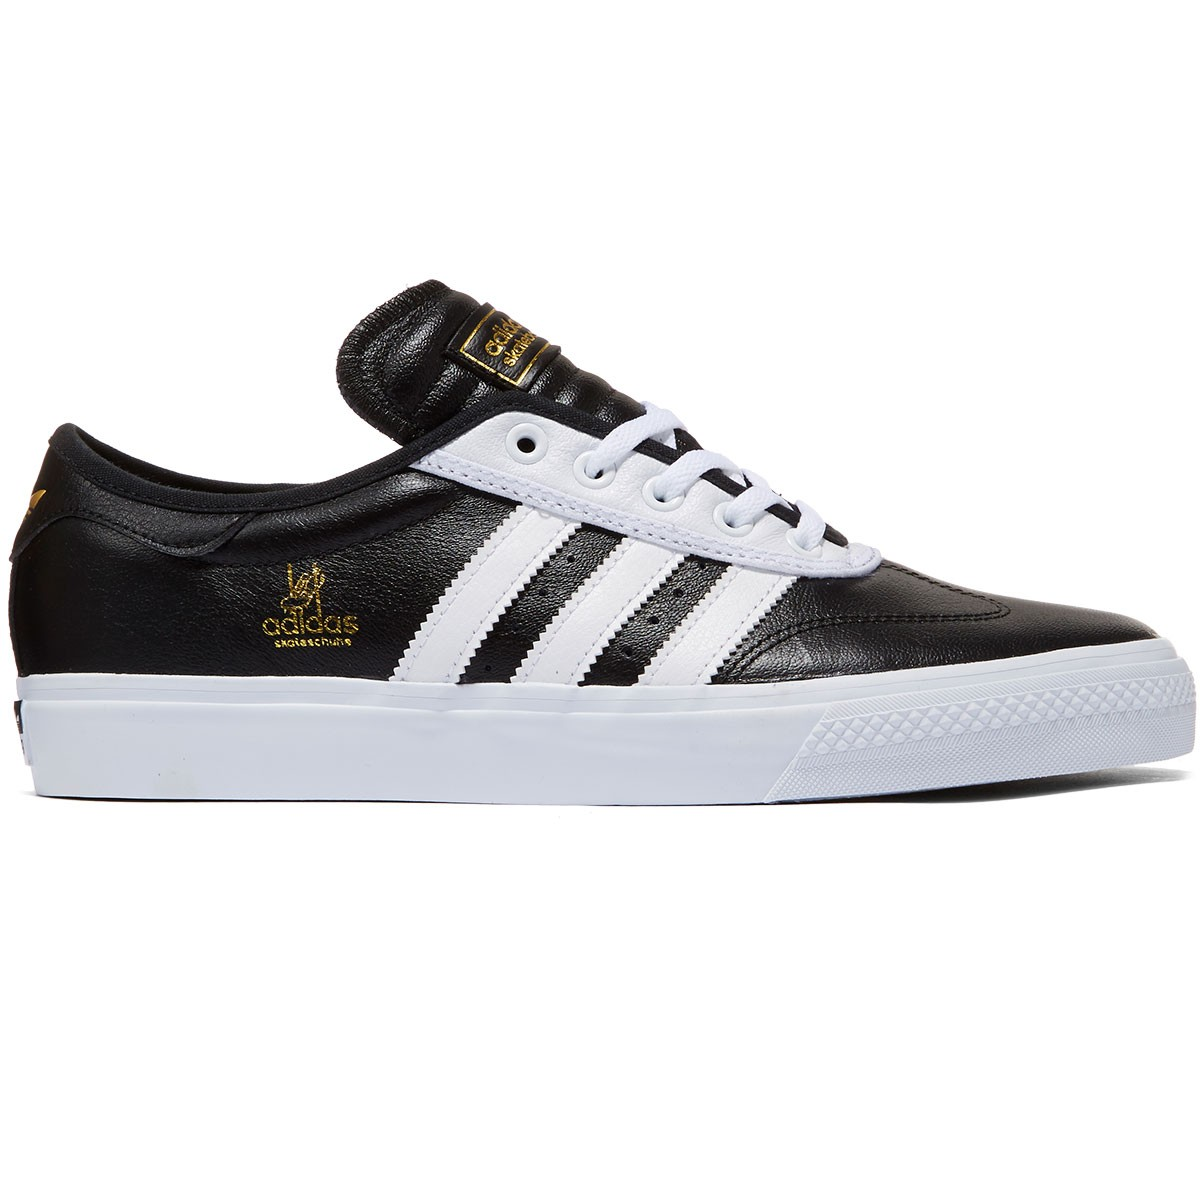 adidas LK Trainer 7 CF K BlackWhite Synthetic Trainers